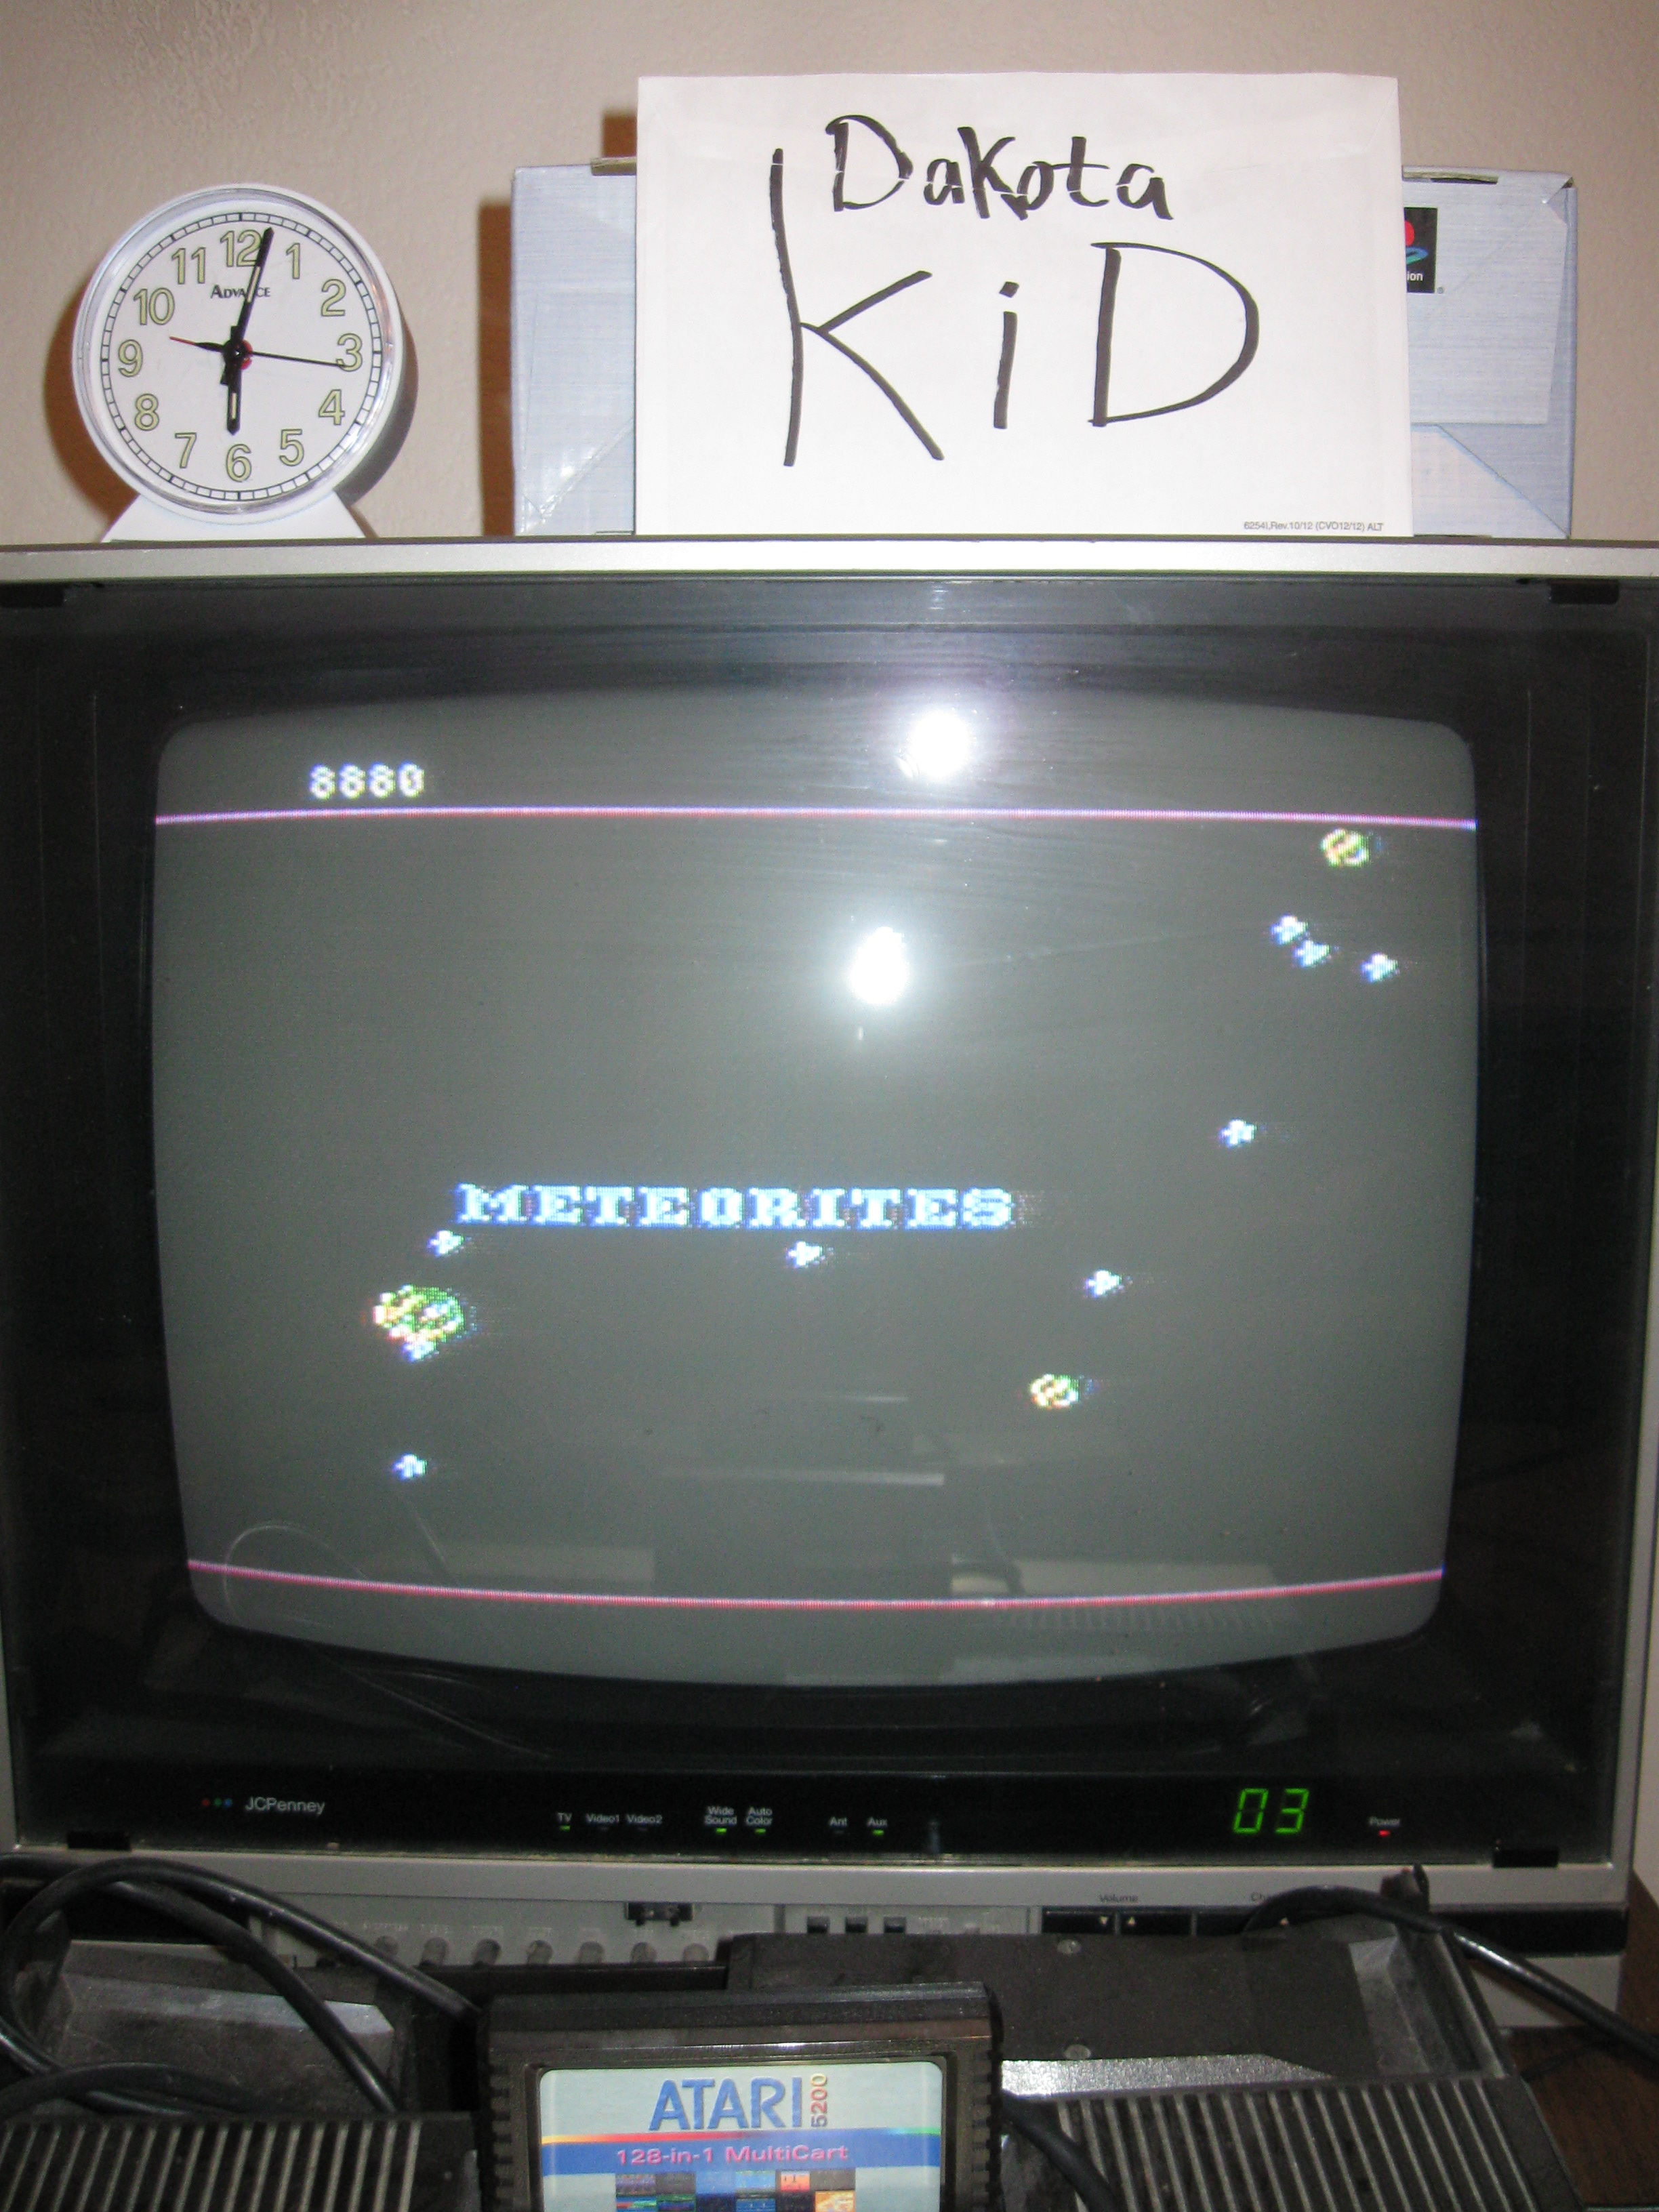 DakotaKid: Meteorites (Atari 5200) 8,880 points on 2016-04-16 17:07:19